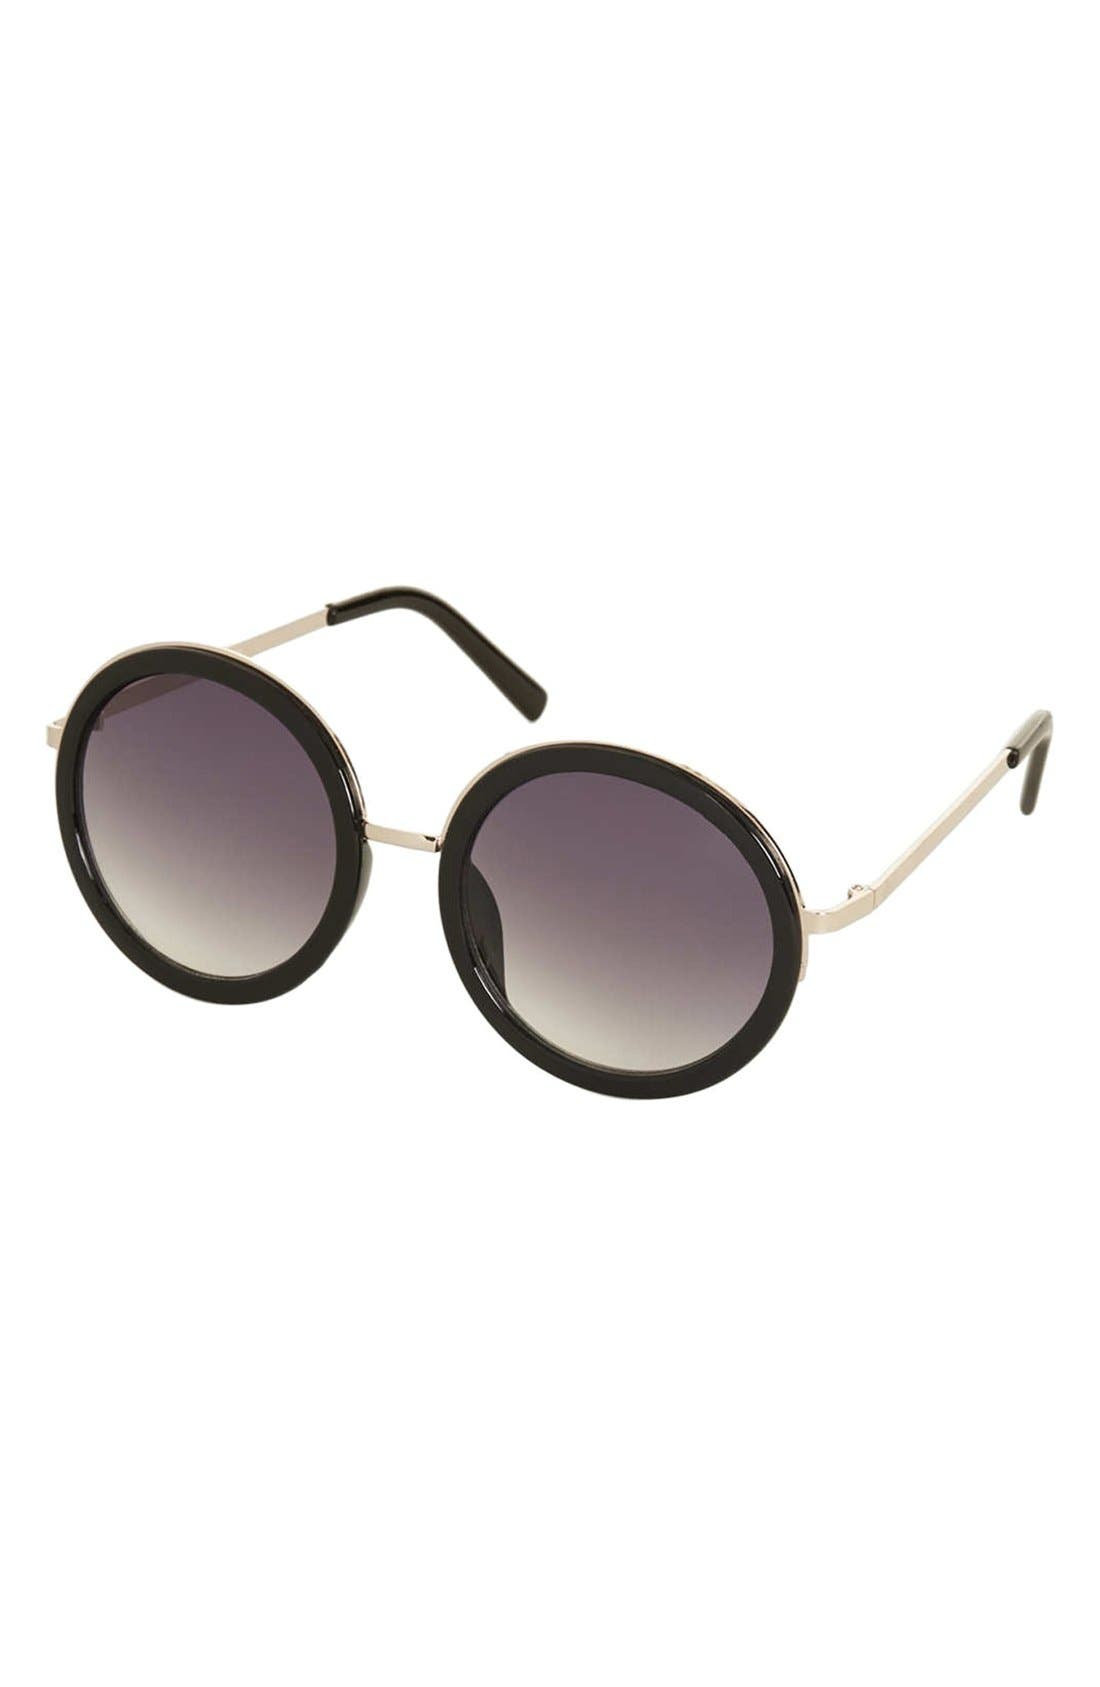 Main Image - Topshop 'Lolita' 50mm Round Sunglasses